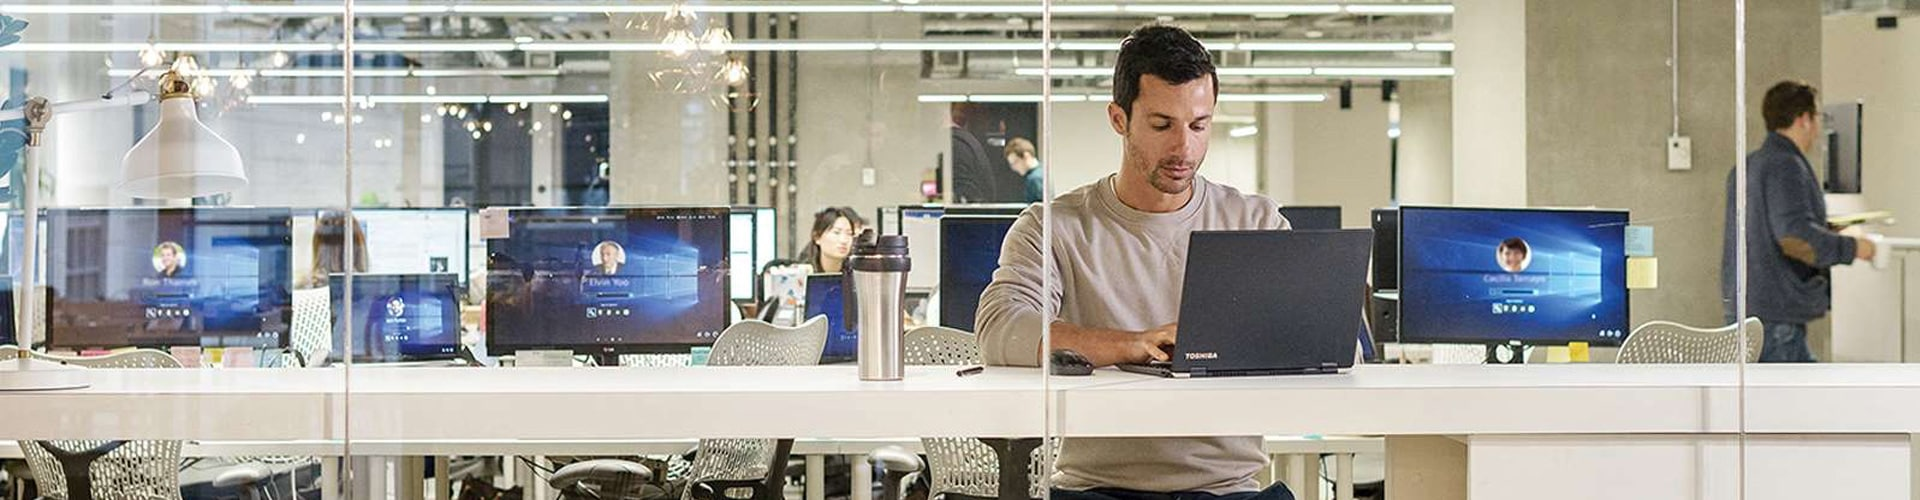 Person sitting at counter in office working on laptop